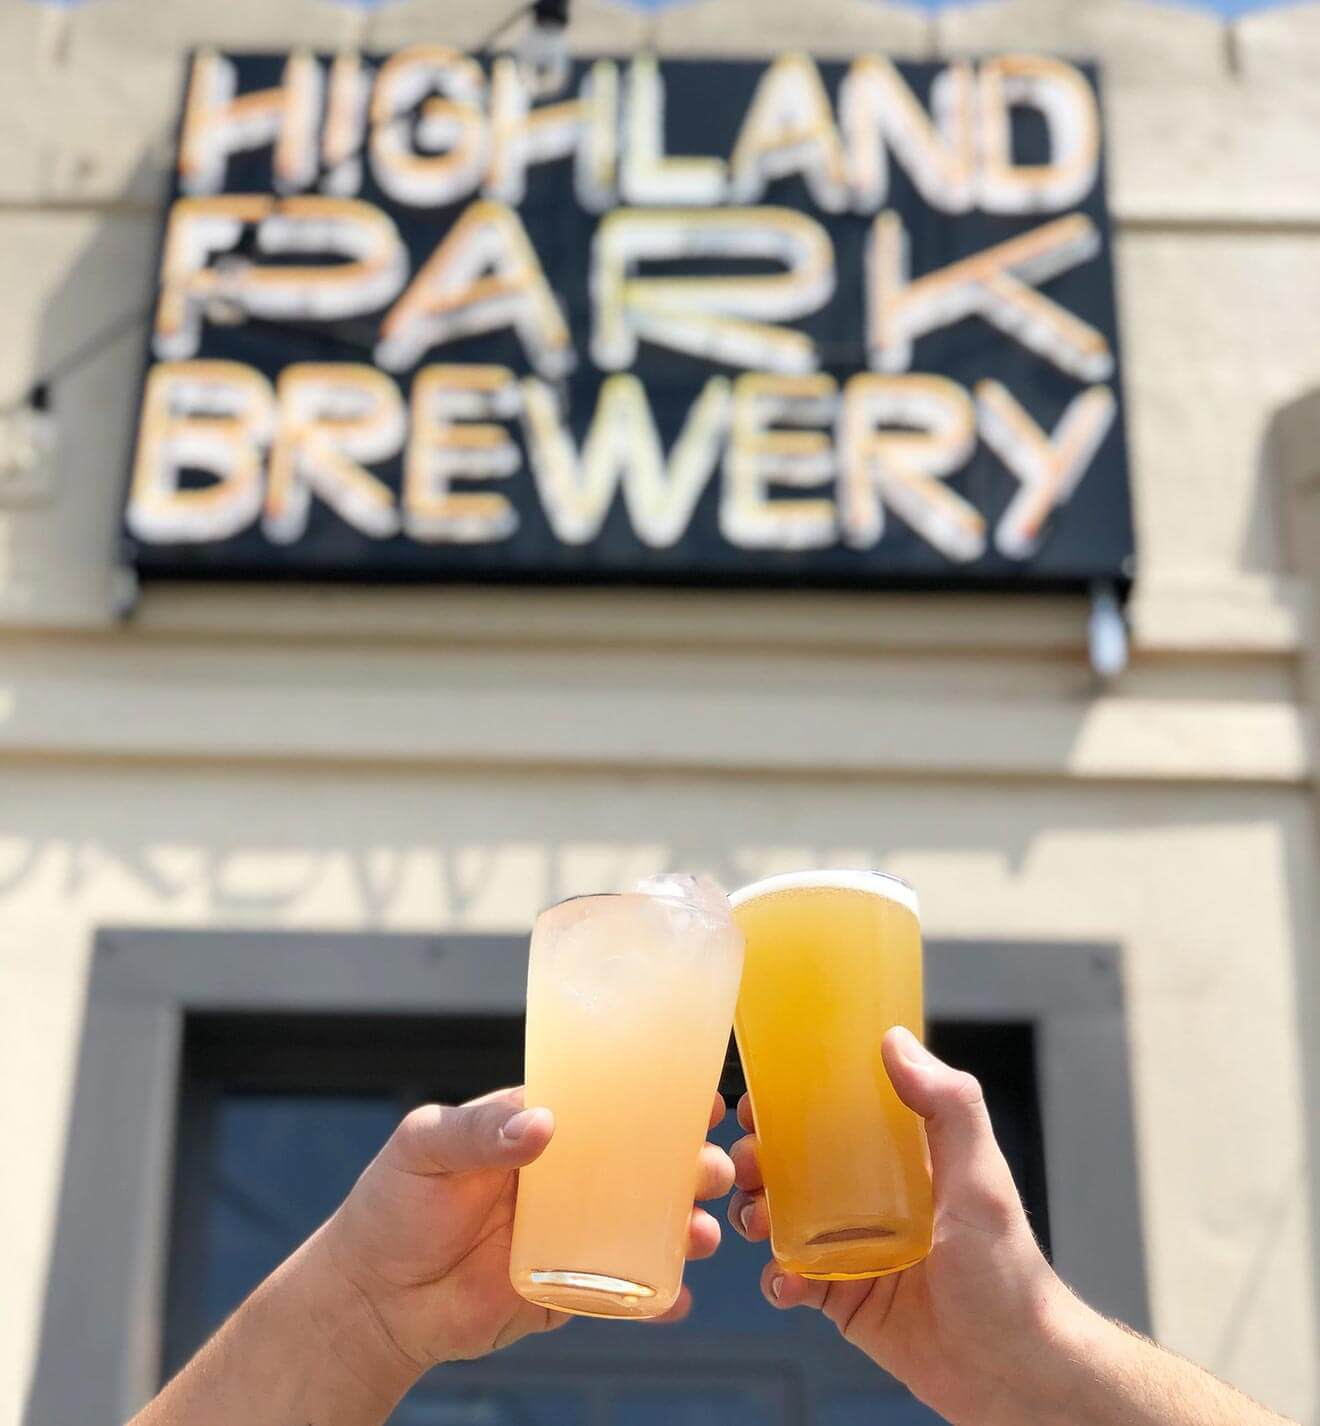 Highland Park Brewery, craft beer cheers, front entrance with signage